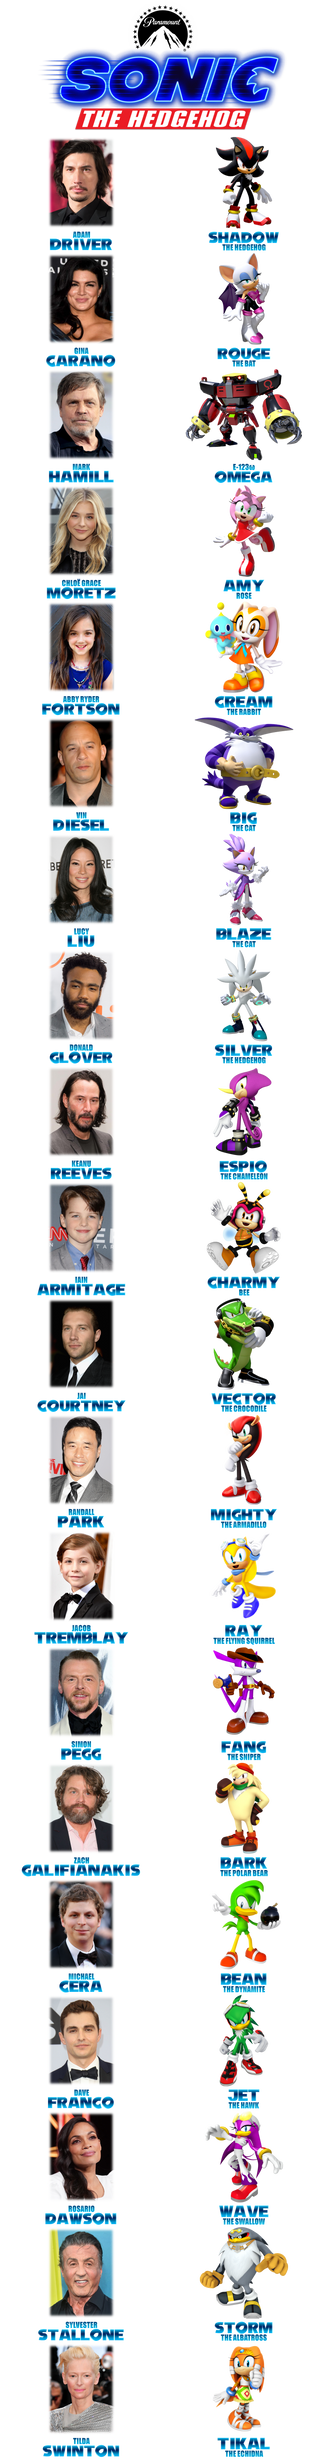 [CASTING CALL] Paramount's Sonic the Hedgehog